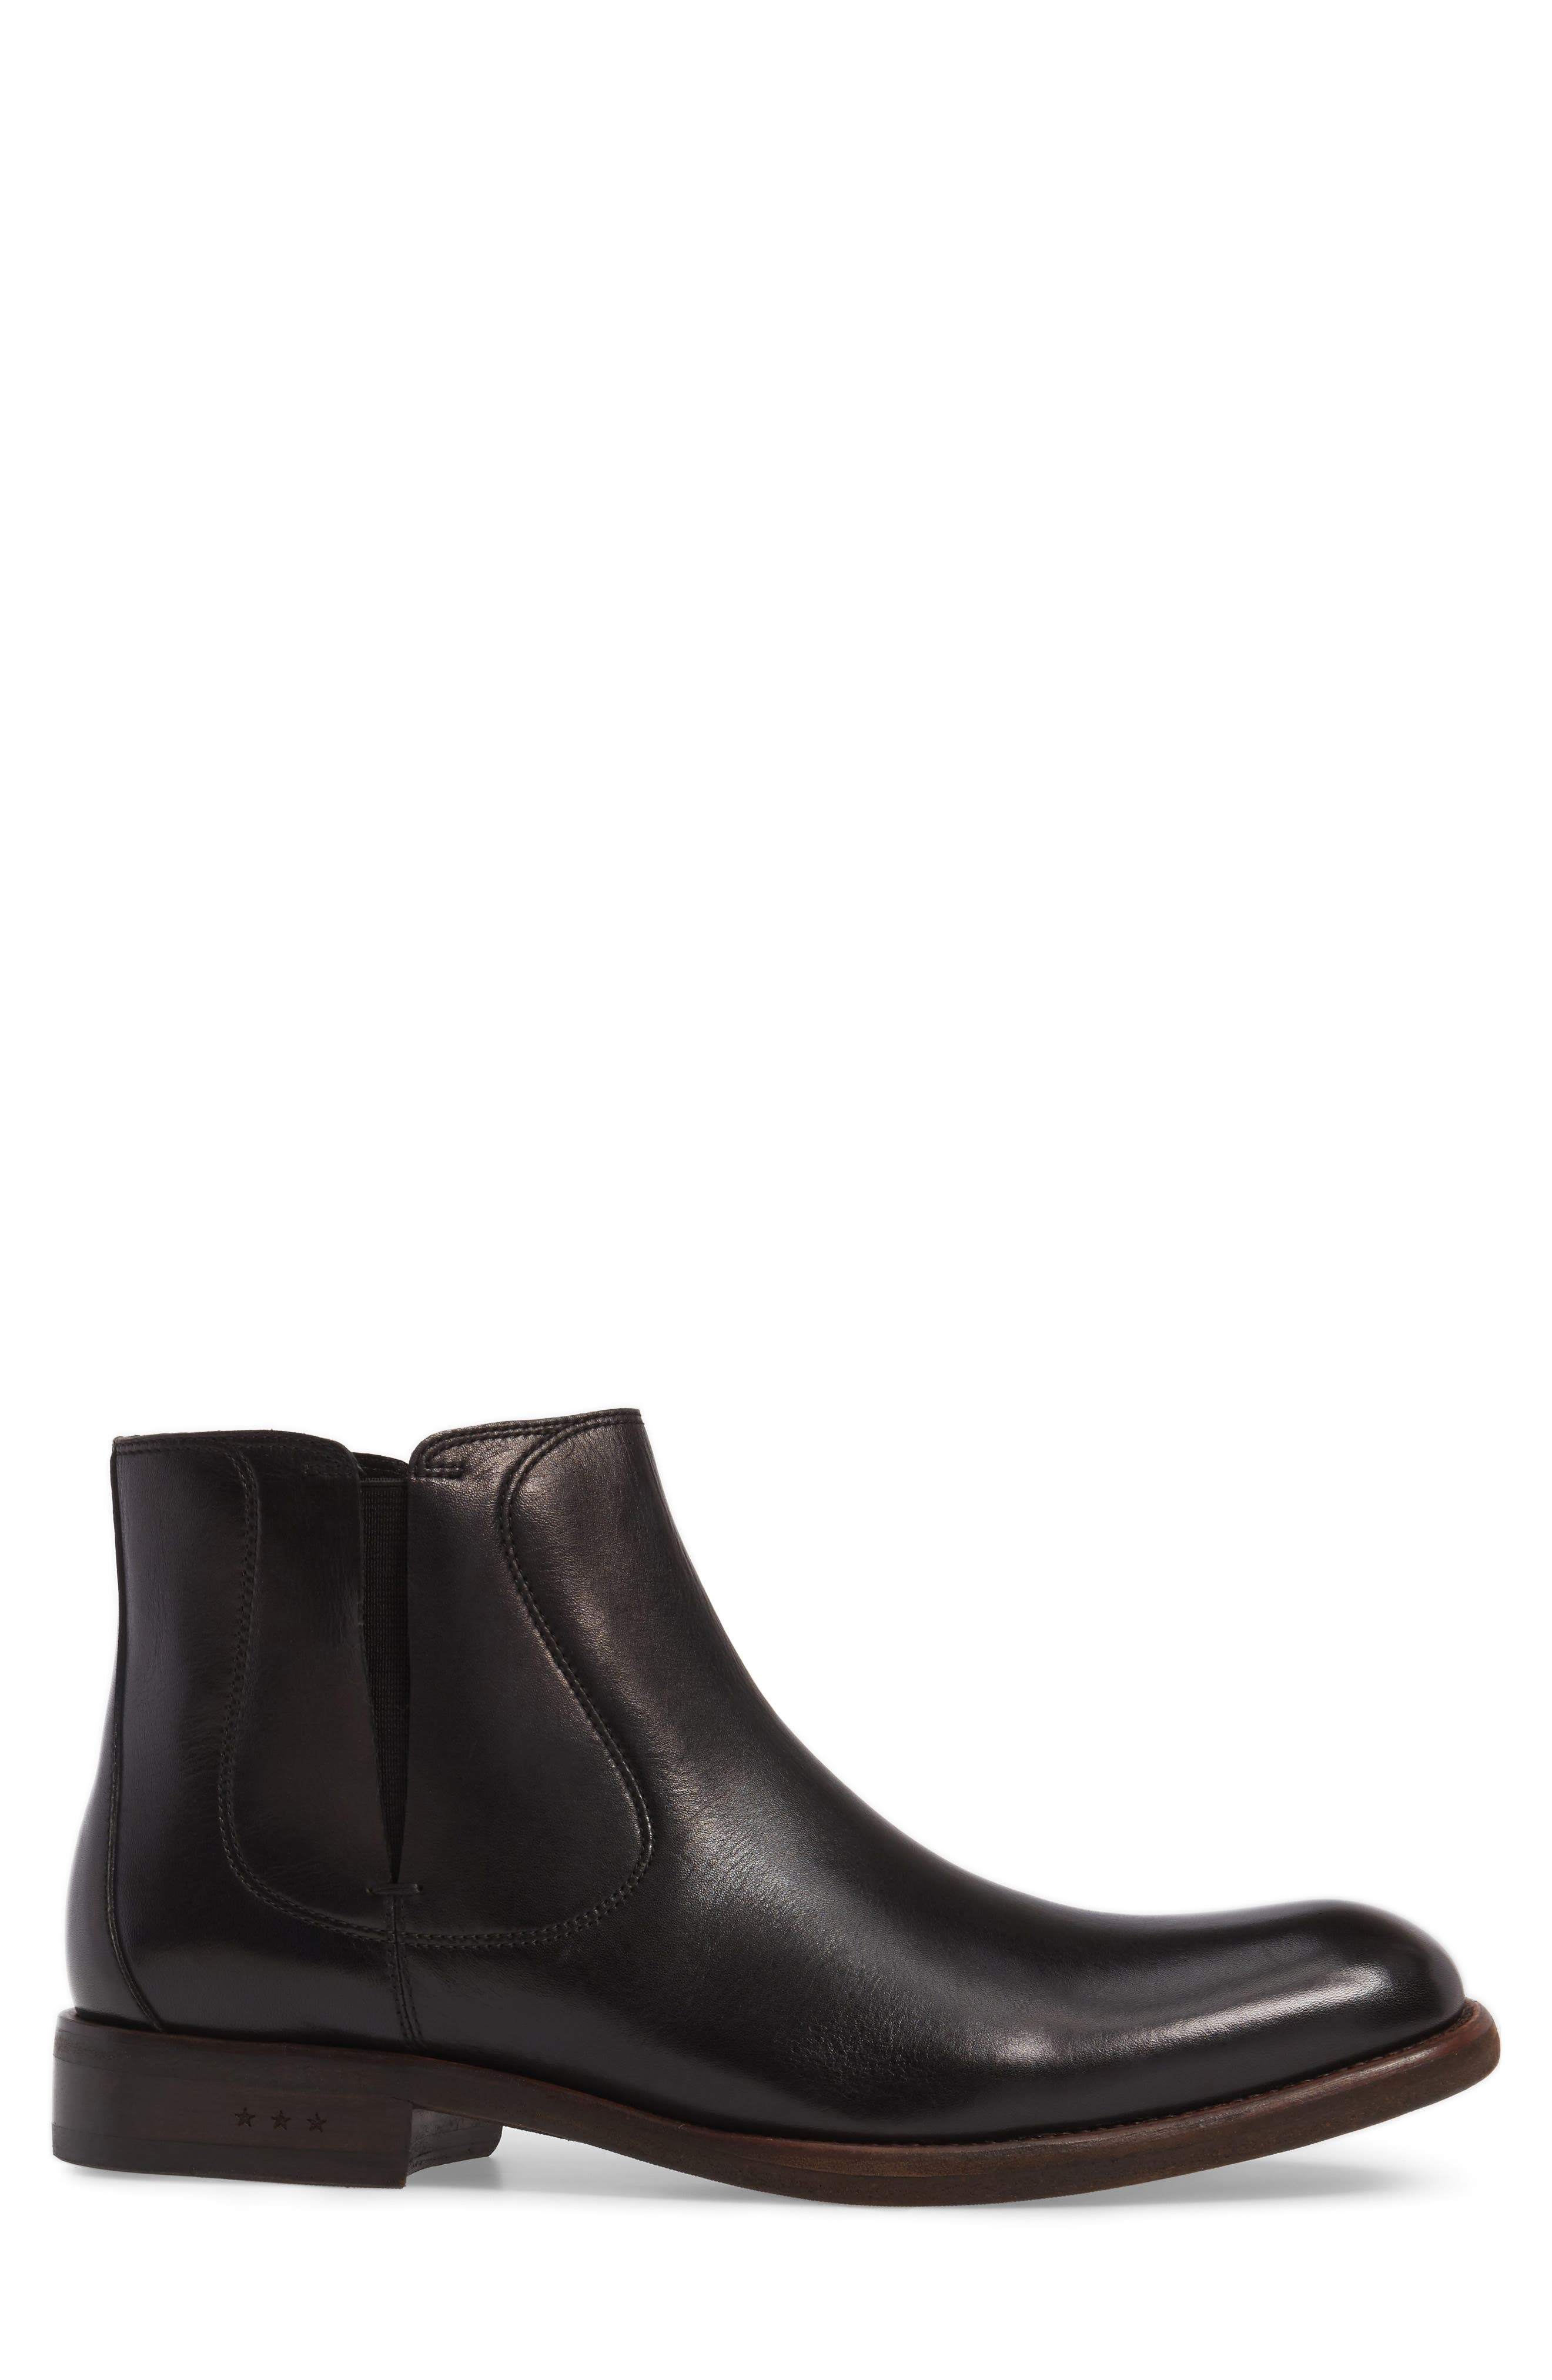 JOHN VARVATOS STAR USA, Waverley Chelsea Boot, Alternate thumbnail 3, color, BLACK LEATHER